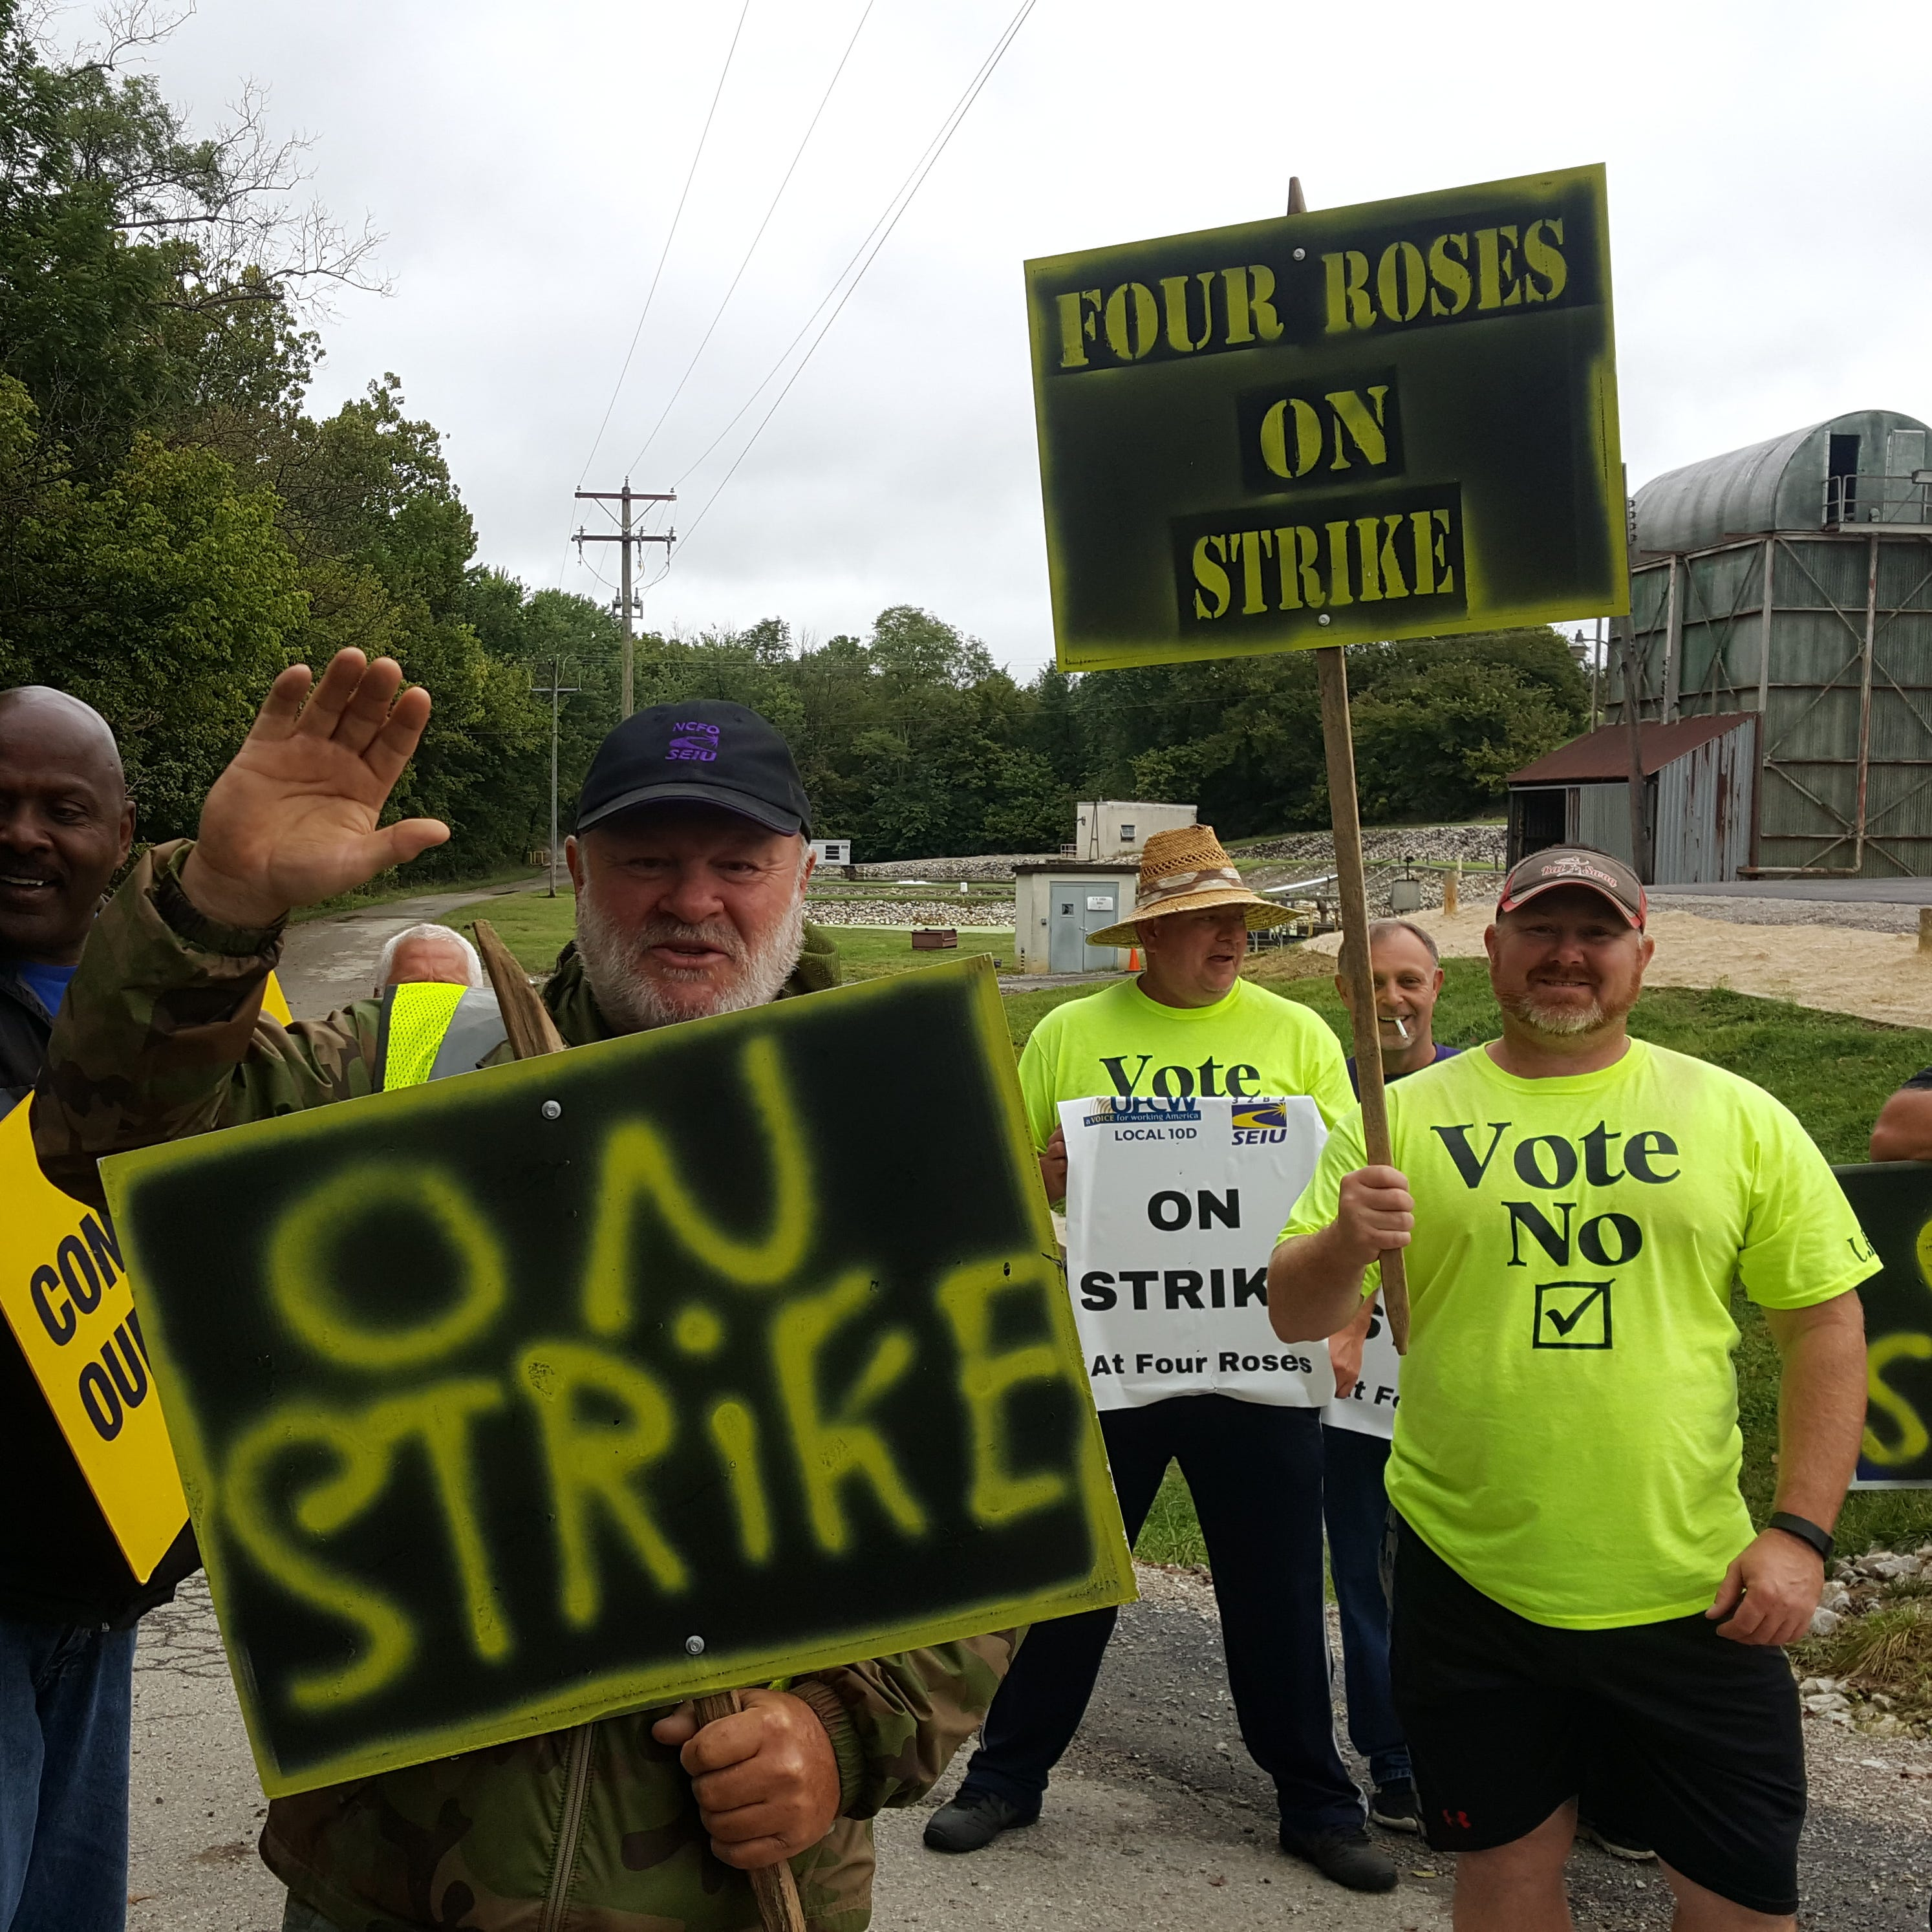 Four Roses bourbon workers on strike: Here's what we know now